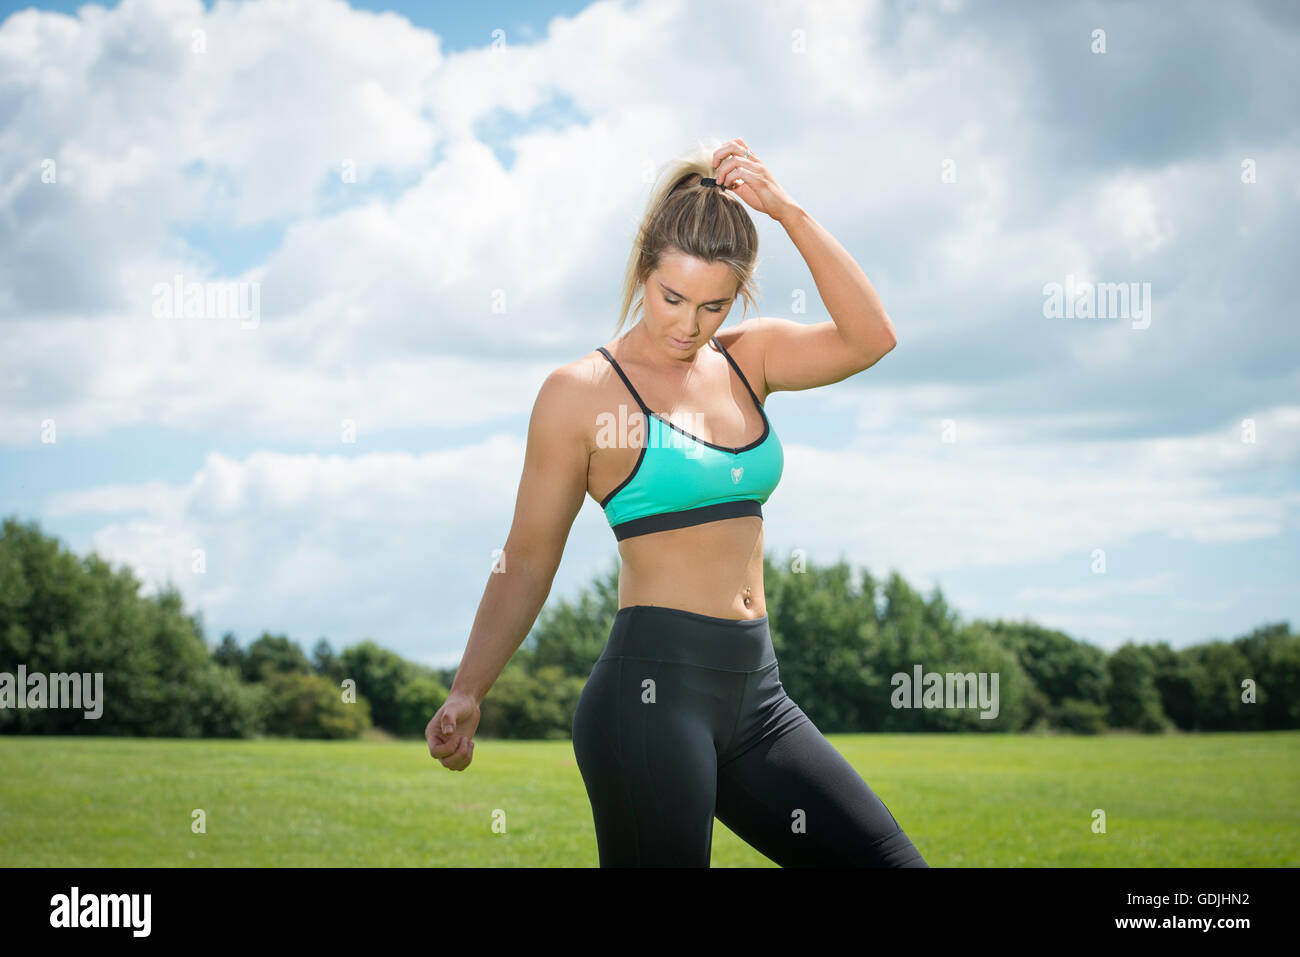 70fc834161 fit woman wearing sports bra and leggings keeping fit - Stock Image